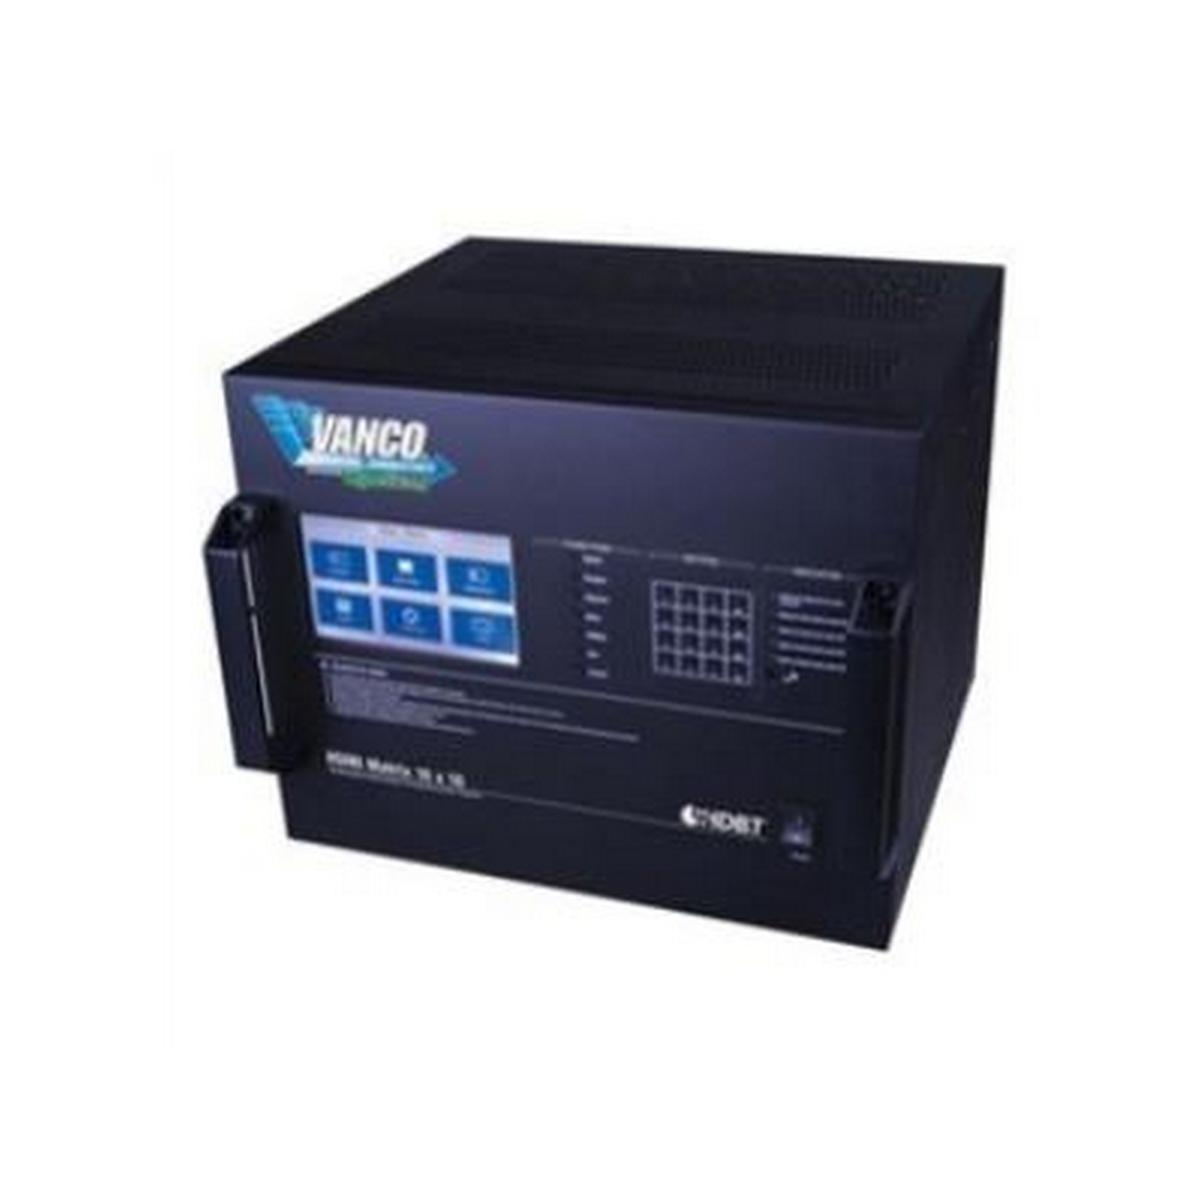 Vanco VPW-280799 MATRIX HDMI 16X16 HDBASET